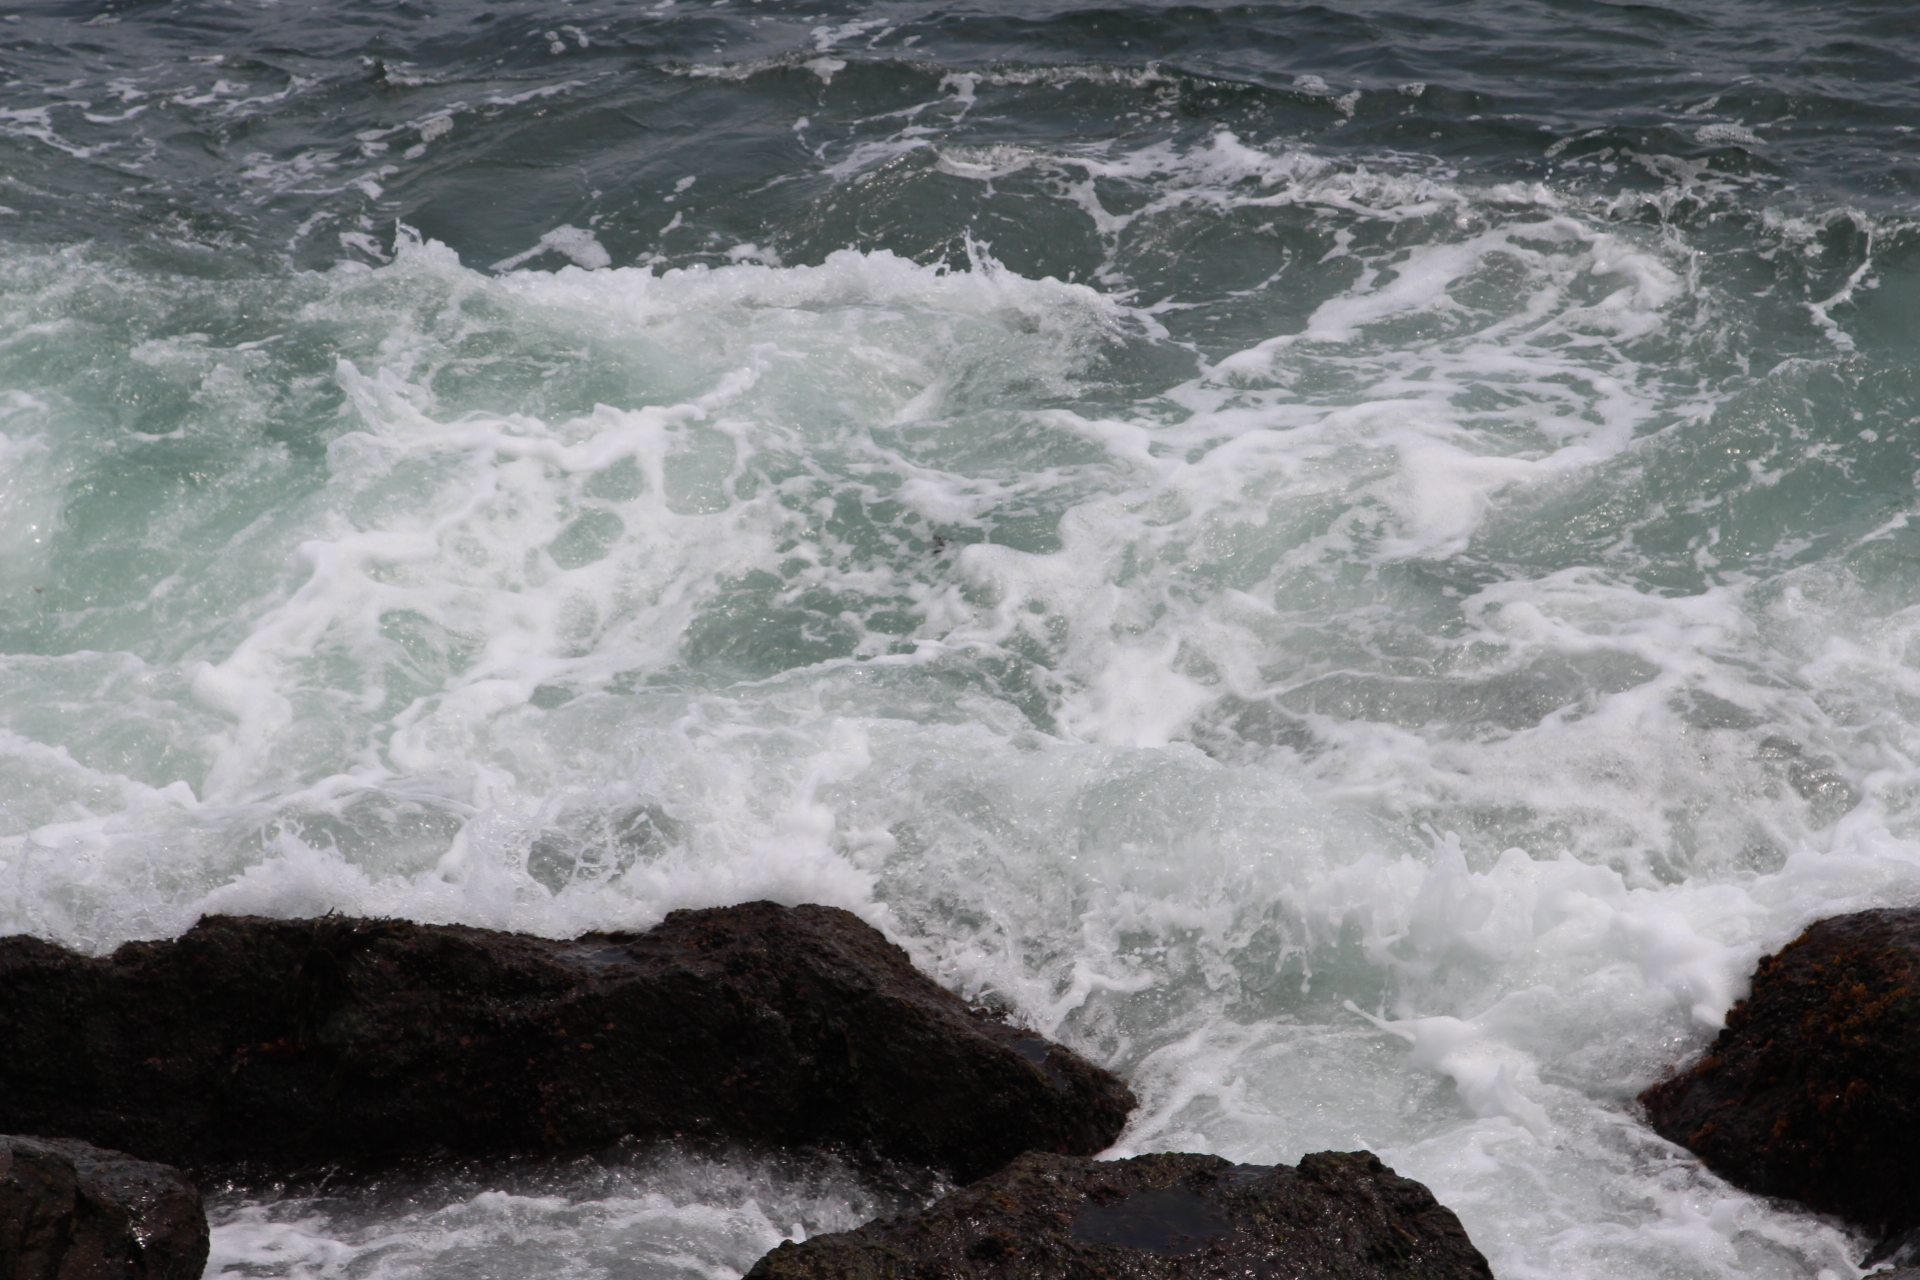 Rocks with waves